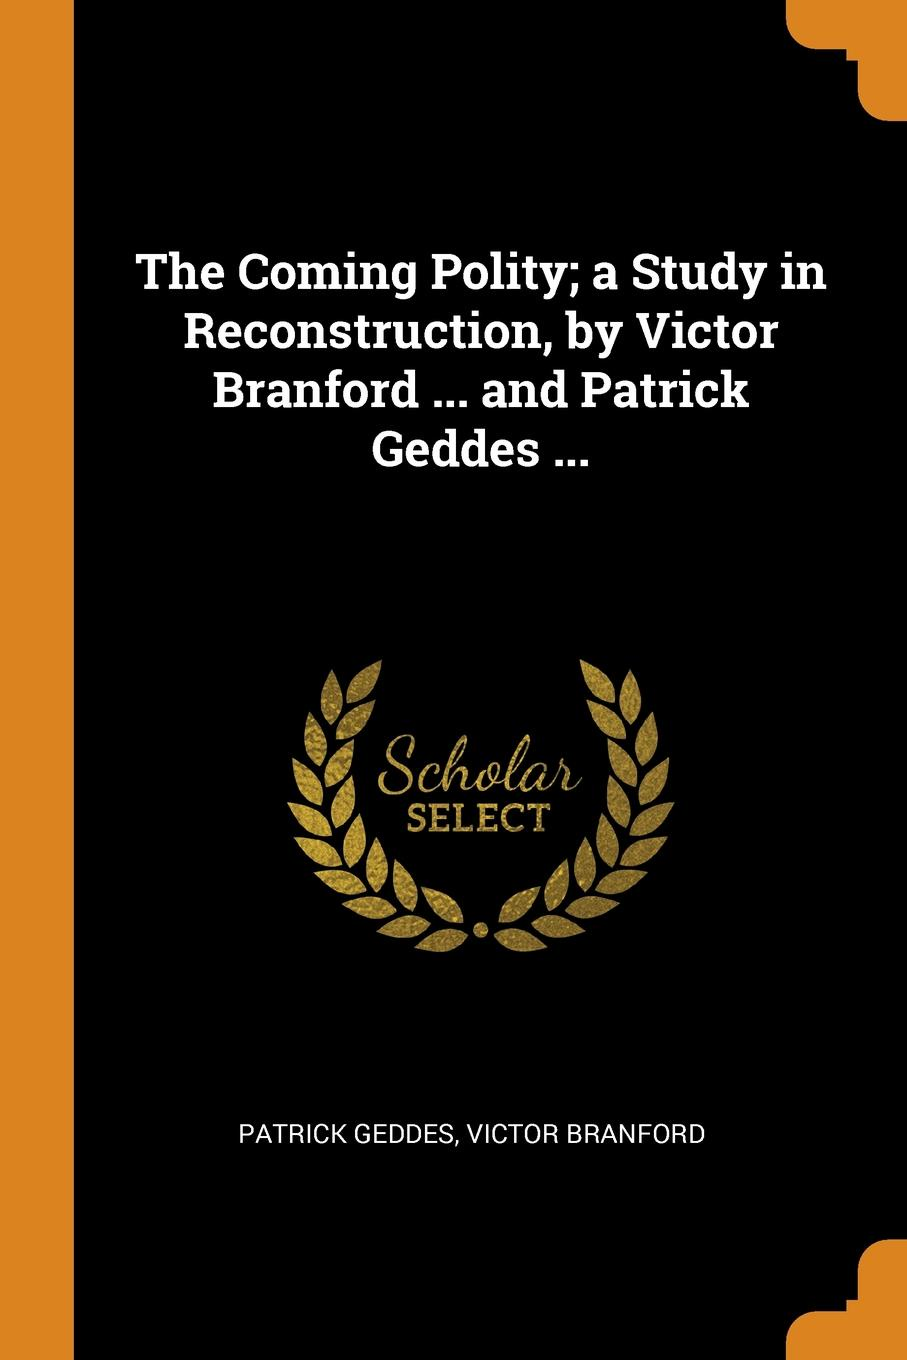 Patrick Geddes, Victor Branford The Coming Polity; a Study in Reconstruction, by Victor Branford ... and Patrick Geddes ... victor branford the coming polity a study in reconstruction by victor branford and patrick geddes